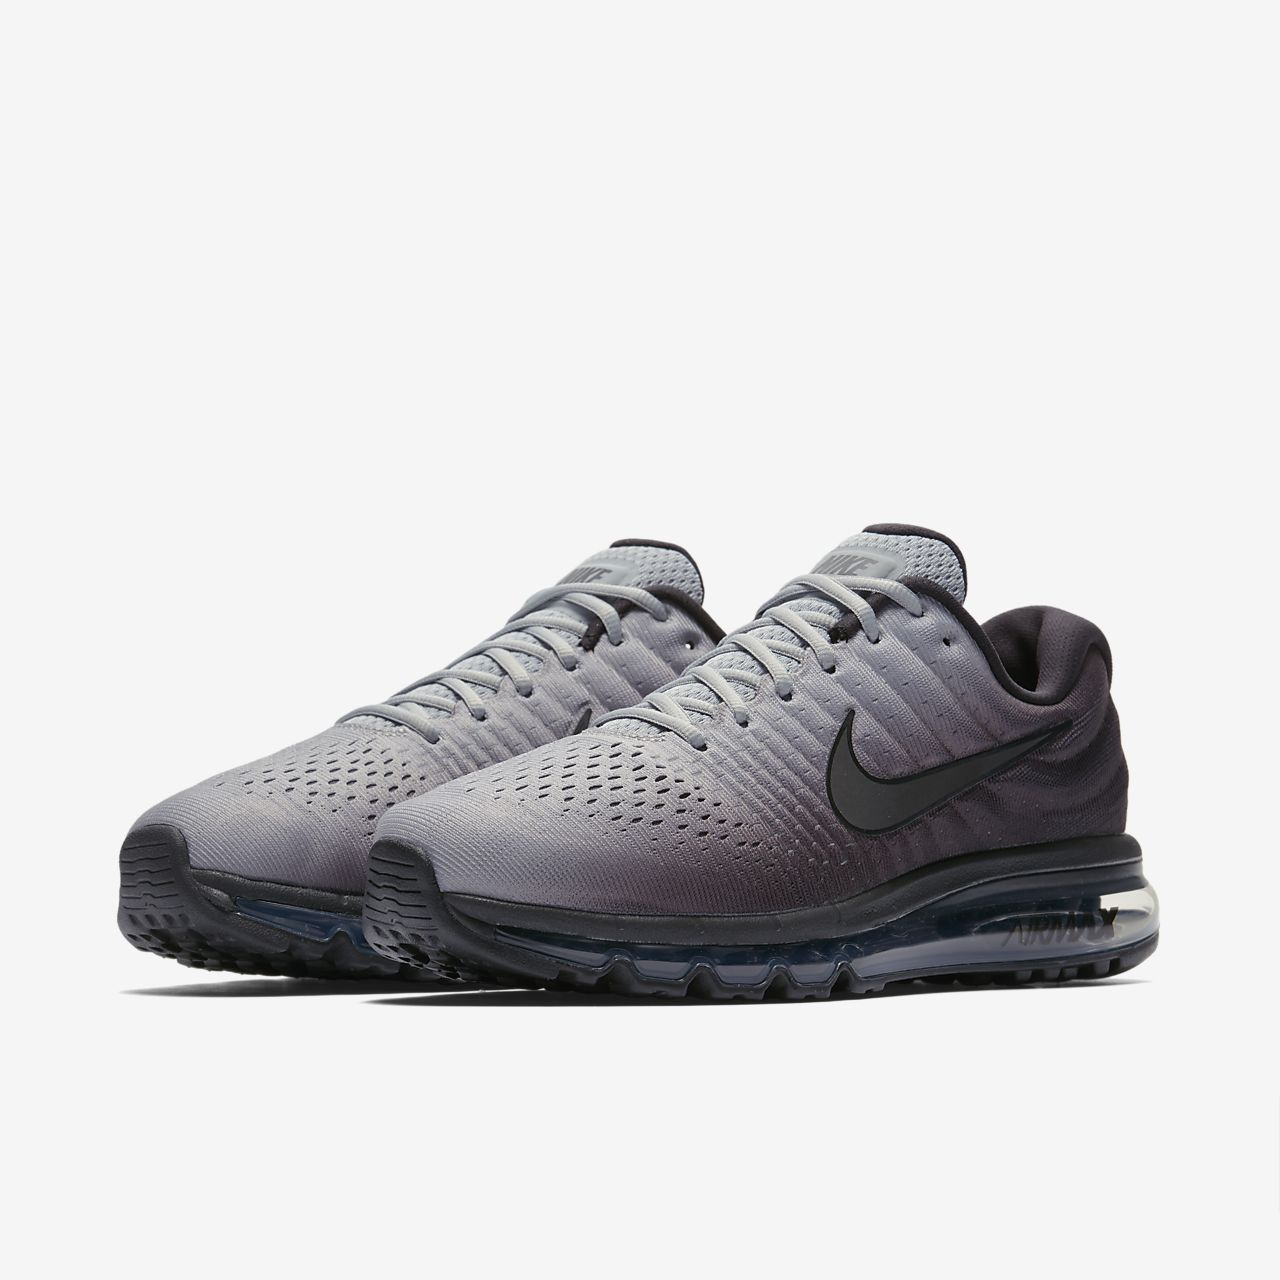 4492425f4d7a Nike Air Max 2017 Men s Running Shoe. Nike.com GB